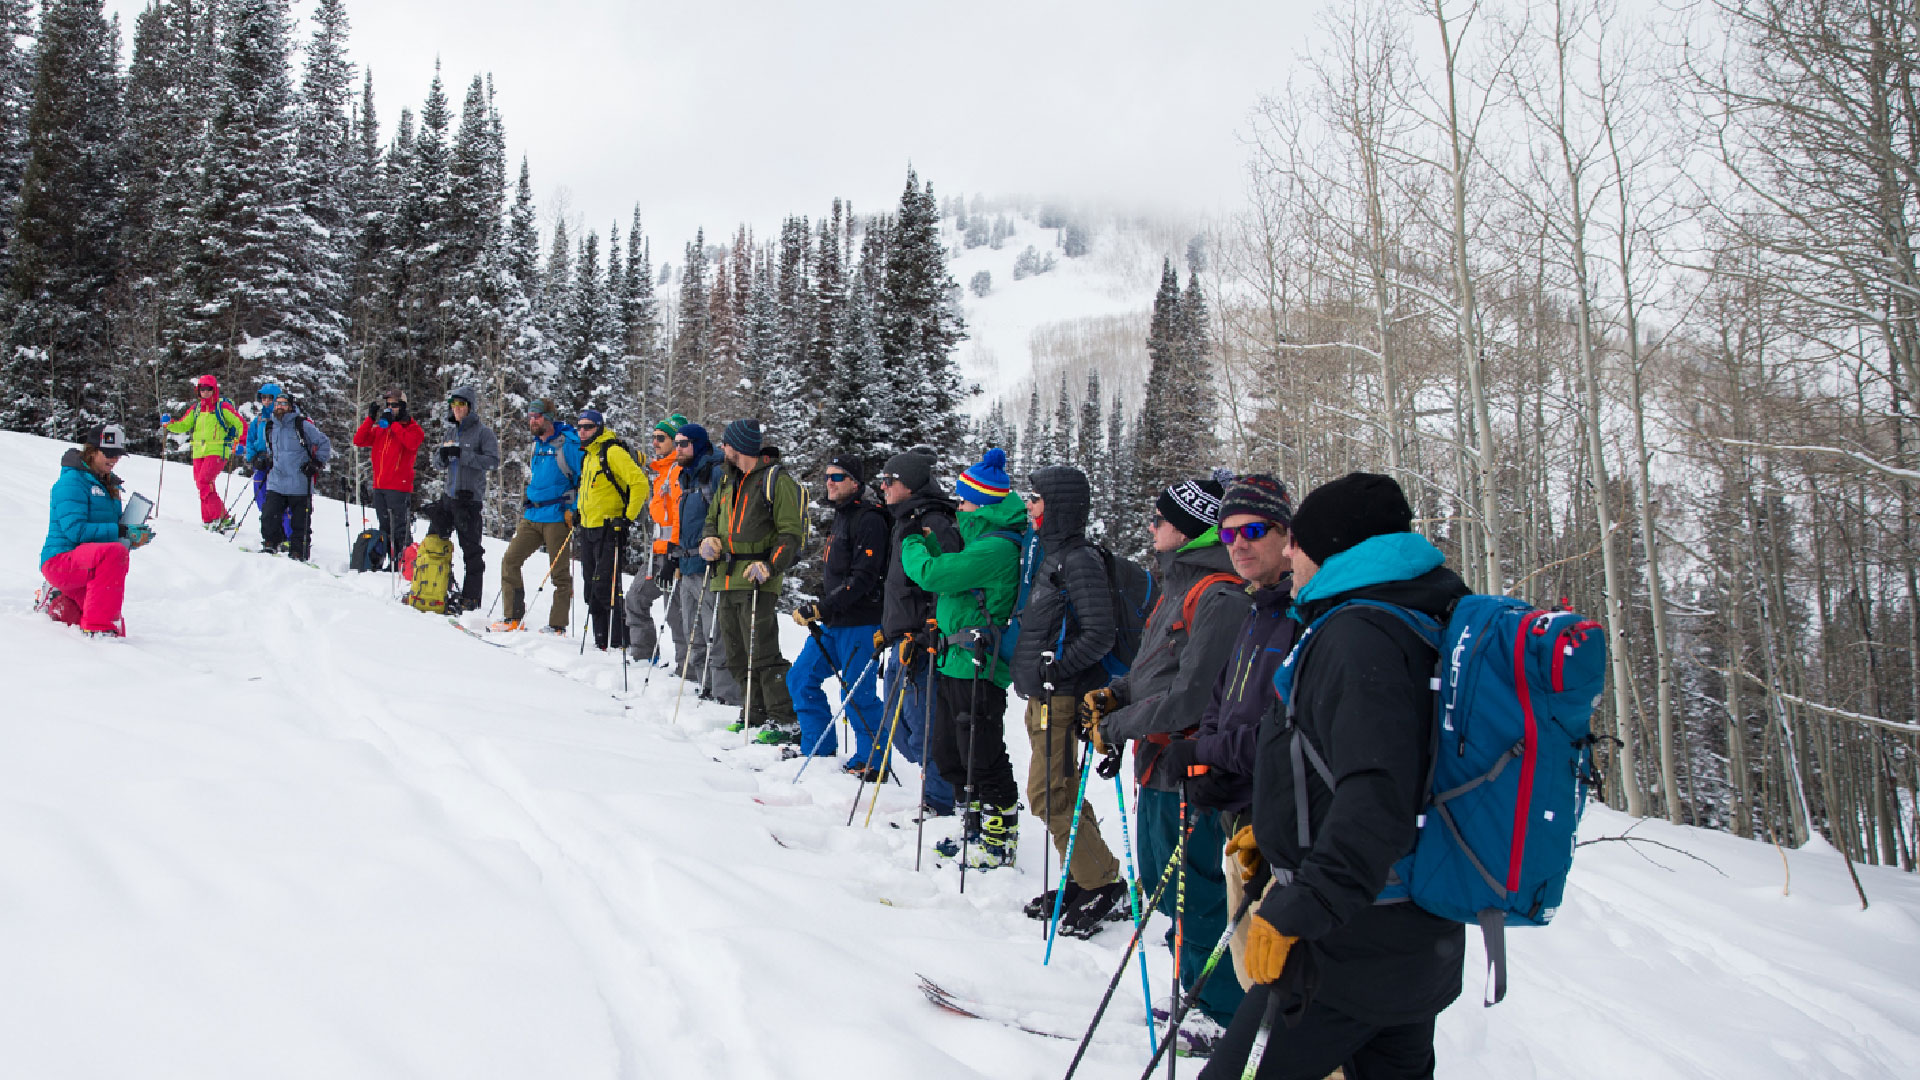 AIARE Level 2 Avalanche Course from White Pine Touring in Park City, UT.